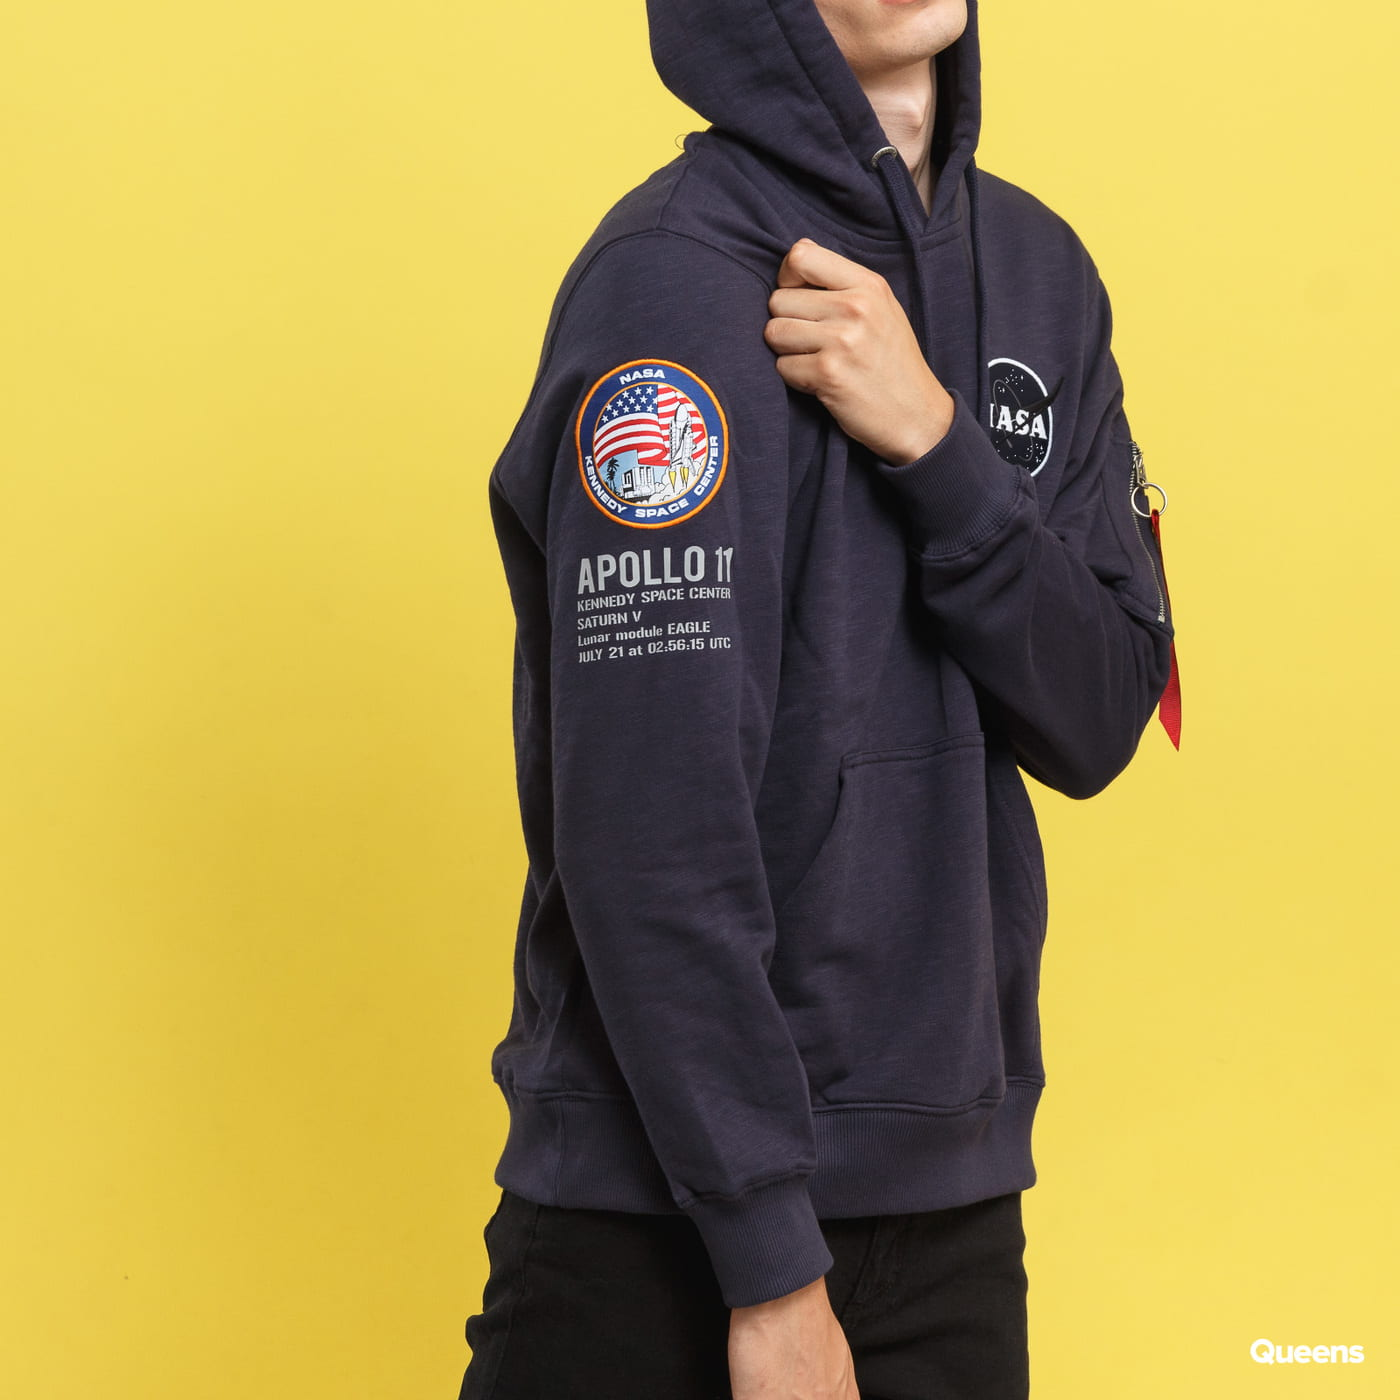 Alpha Industries Apollo 11 Hoody Marine